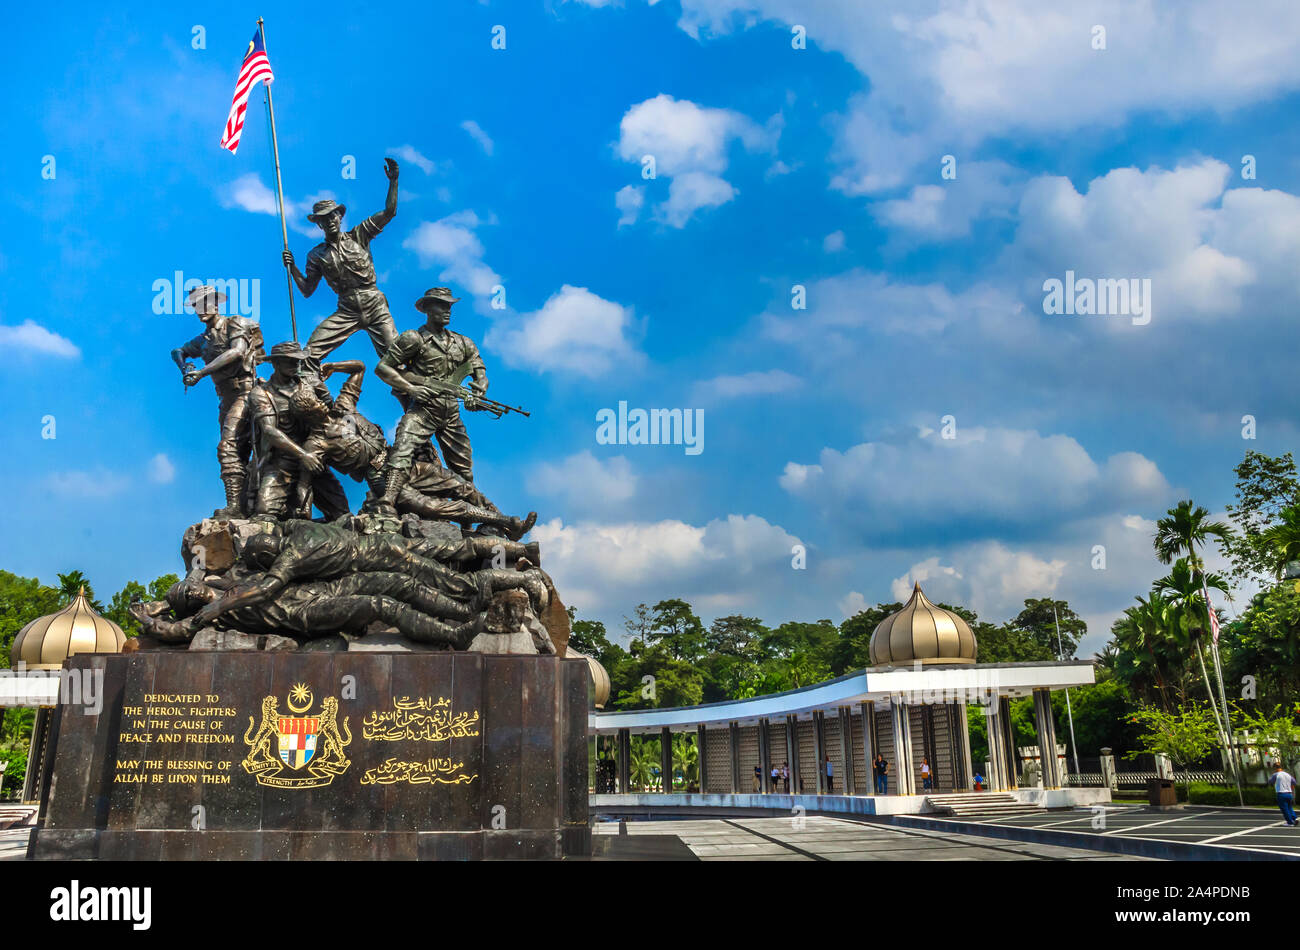 tugu high resolution stock photography and images alamy https www alamy com kuala lampur malaysia december 18 2018 royal malaysias national monument also known as tugu negara it is located in the capital kuala lumpur image329949351 html